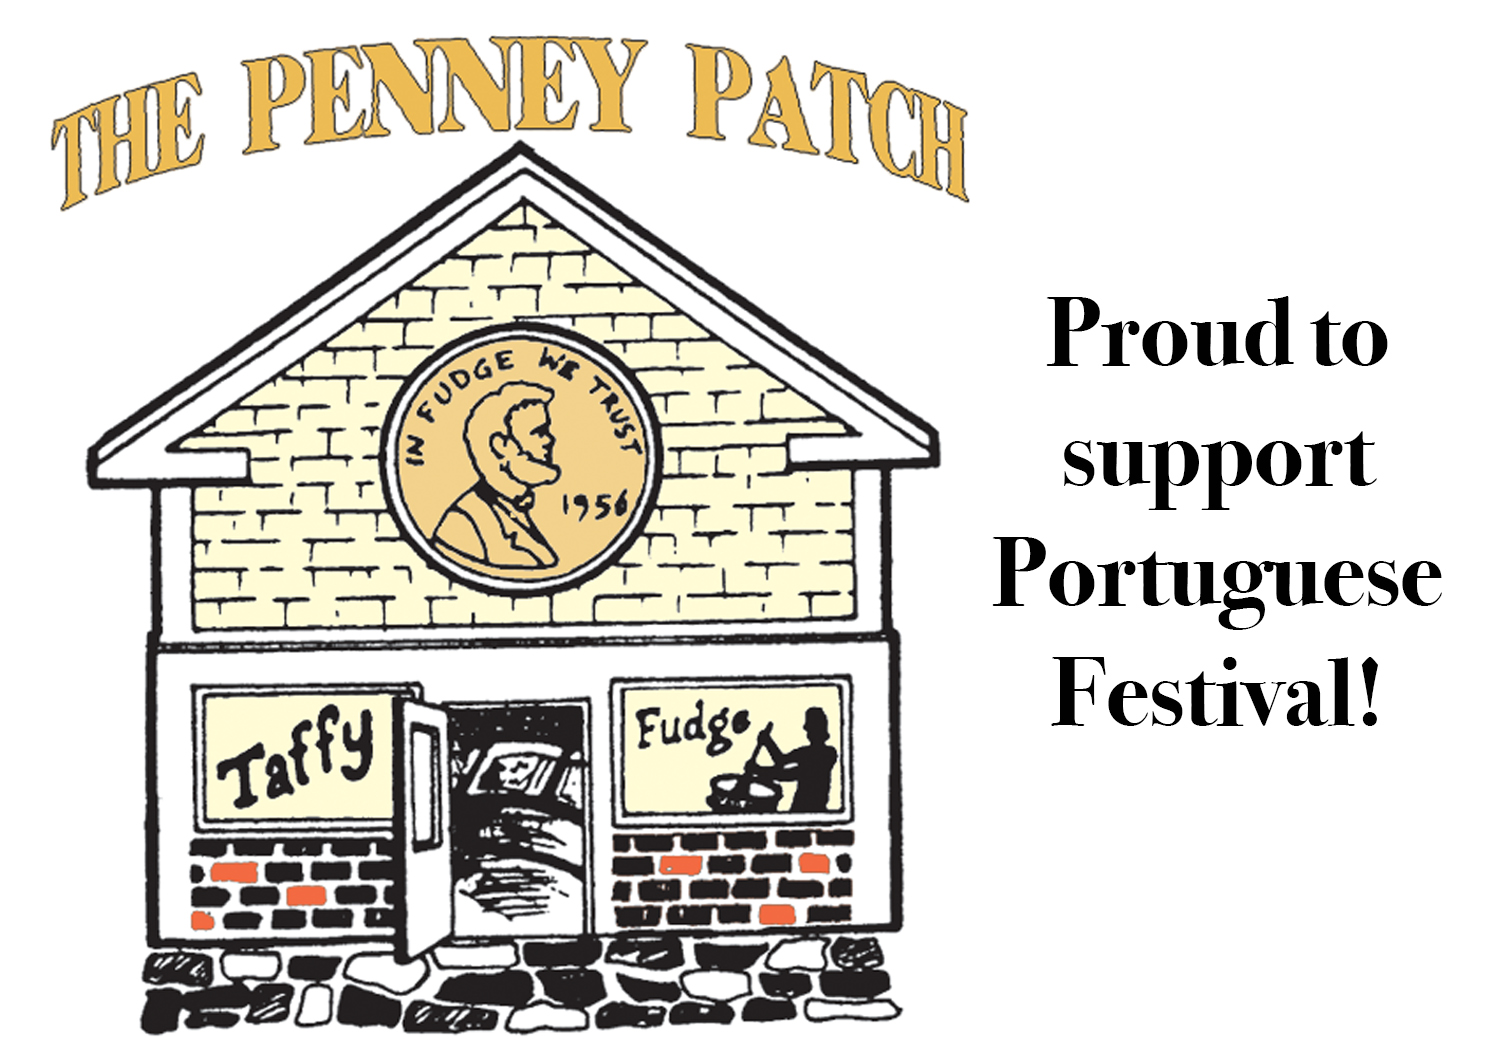 The Penny Patch